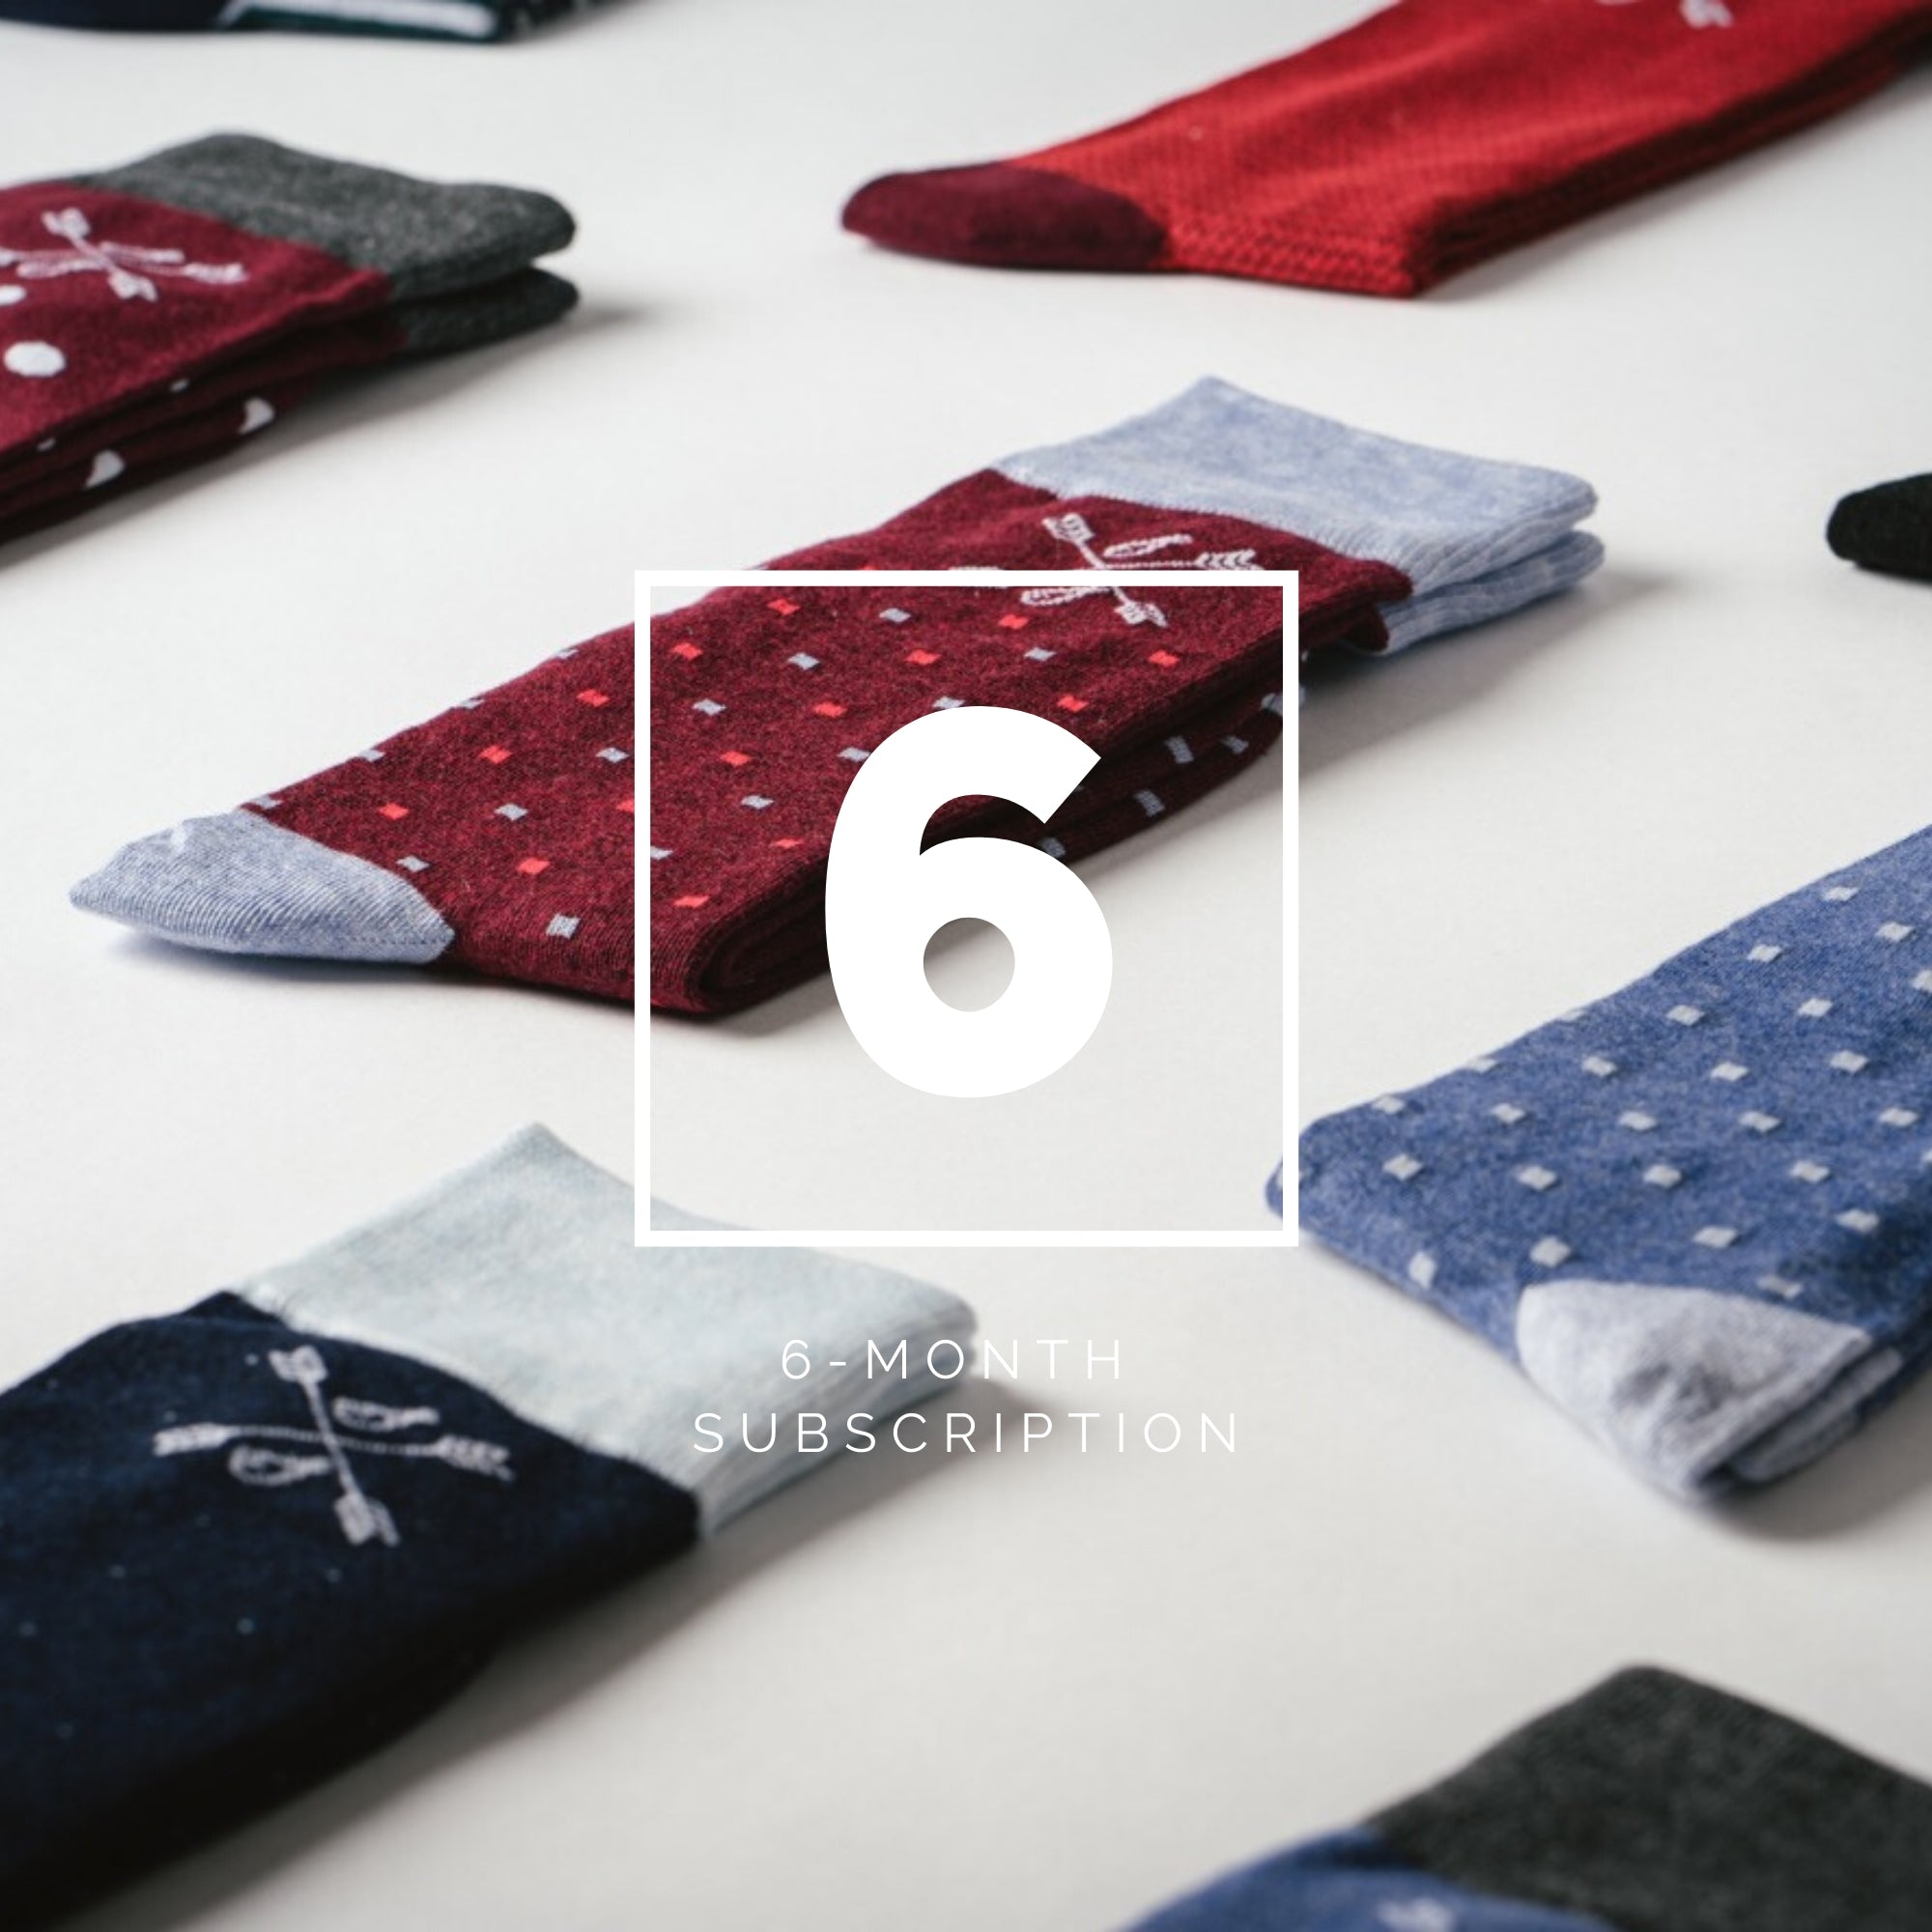 Dress Sock Subscription Box for Men